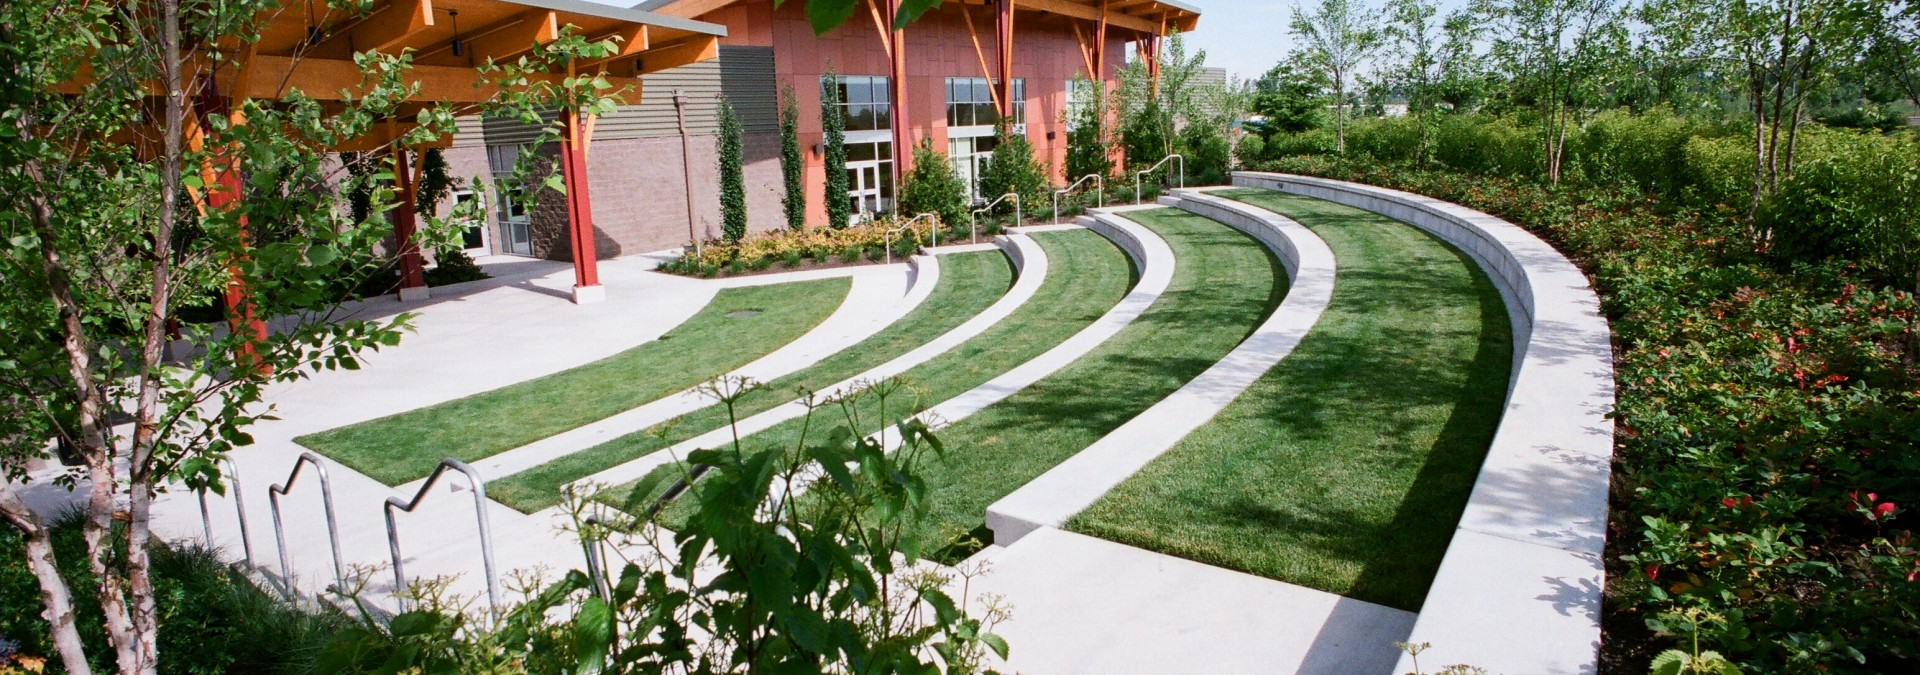 Slide Six – Kroc Center Ampitheater